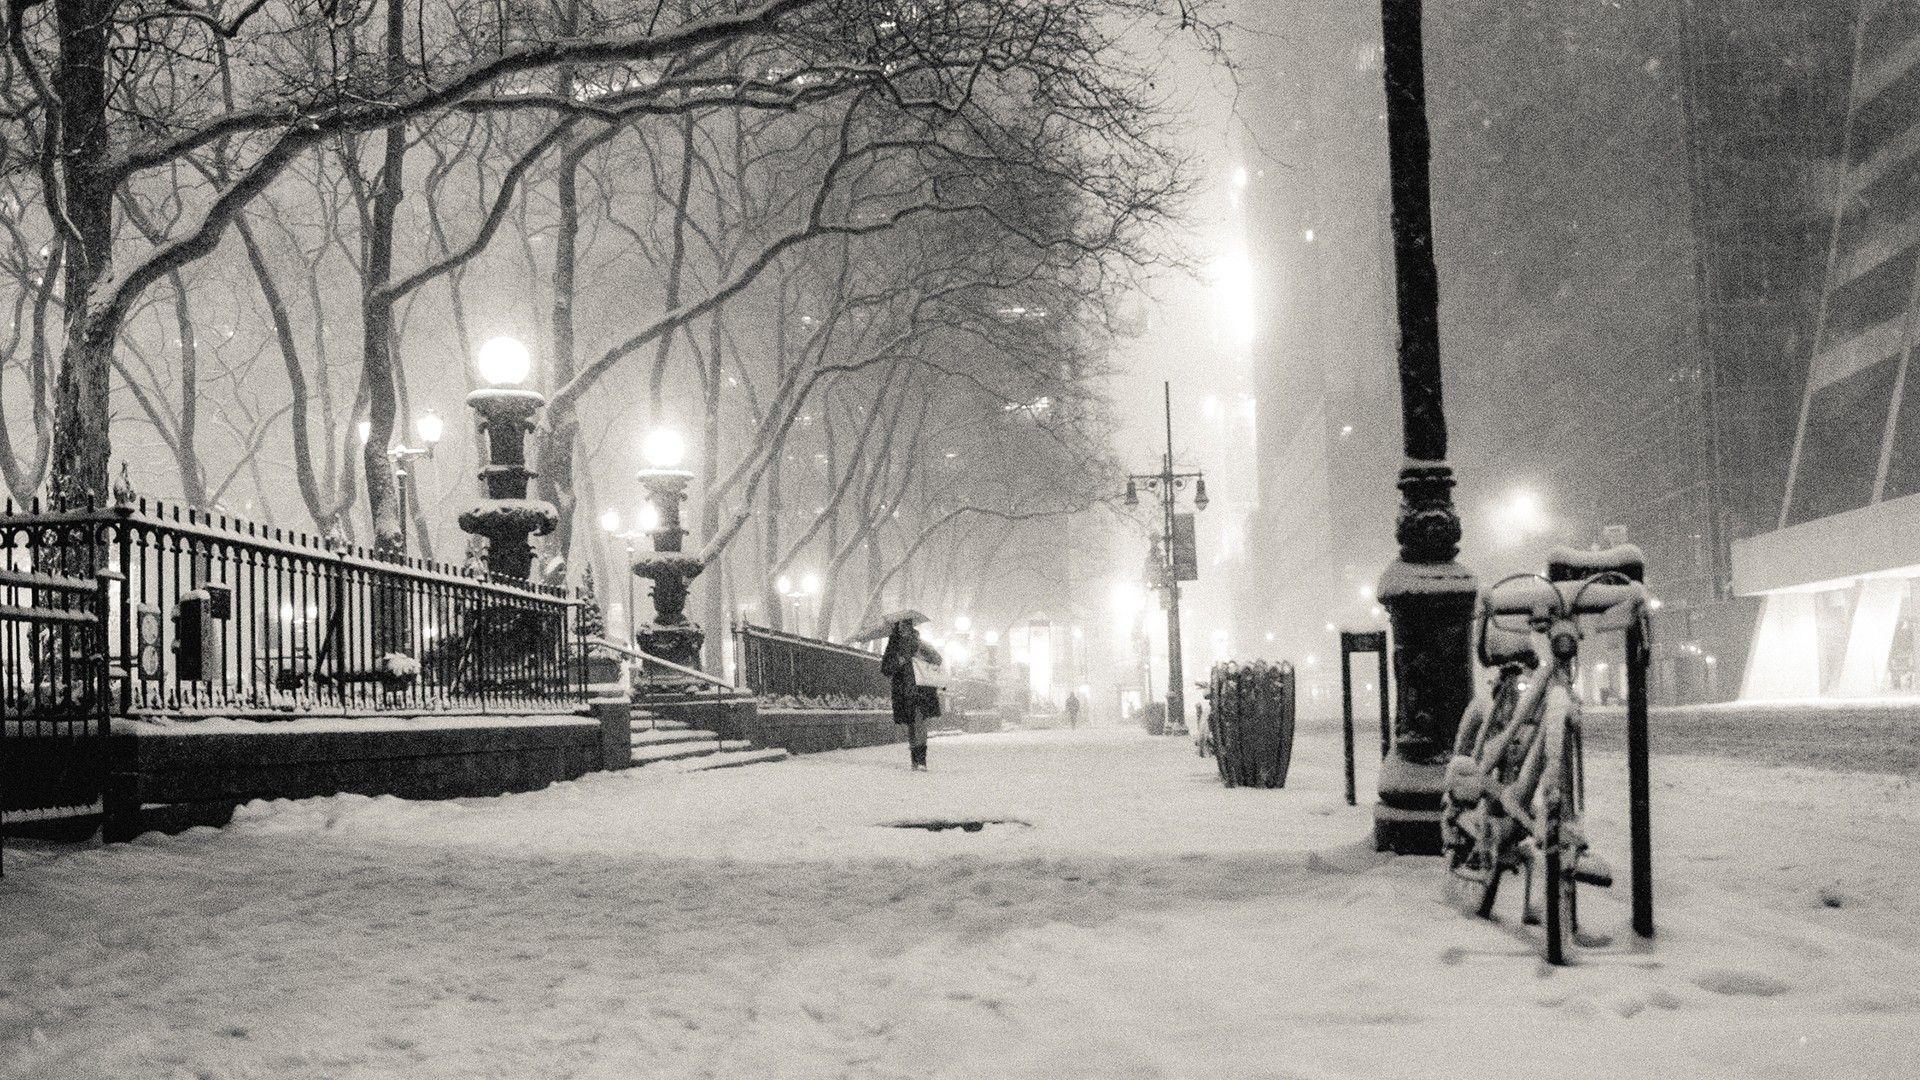 black and white, winter, snow, New York City, monochrome, cities .